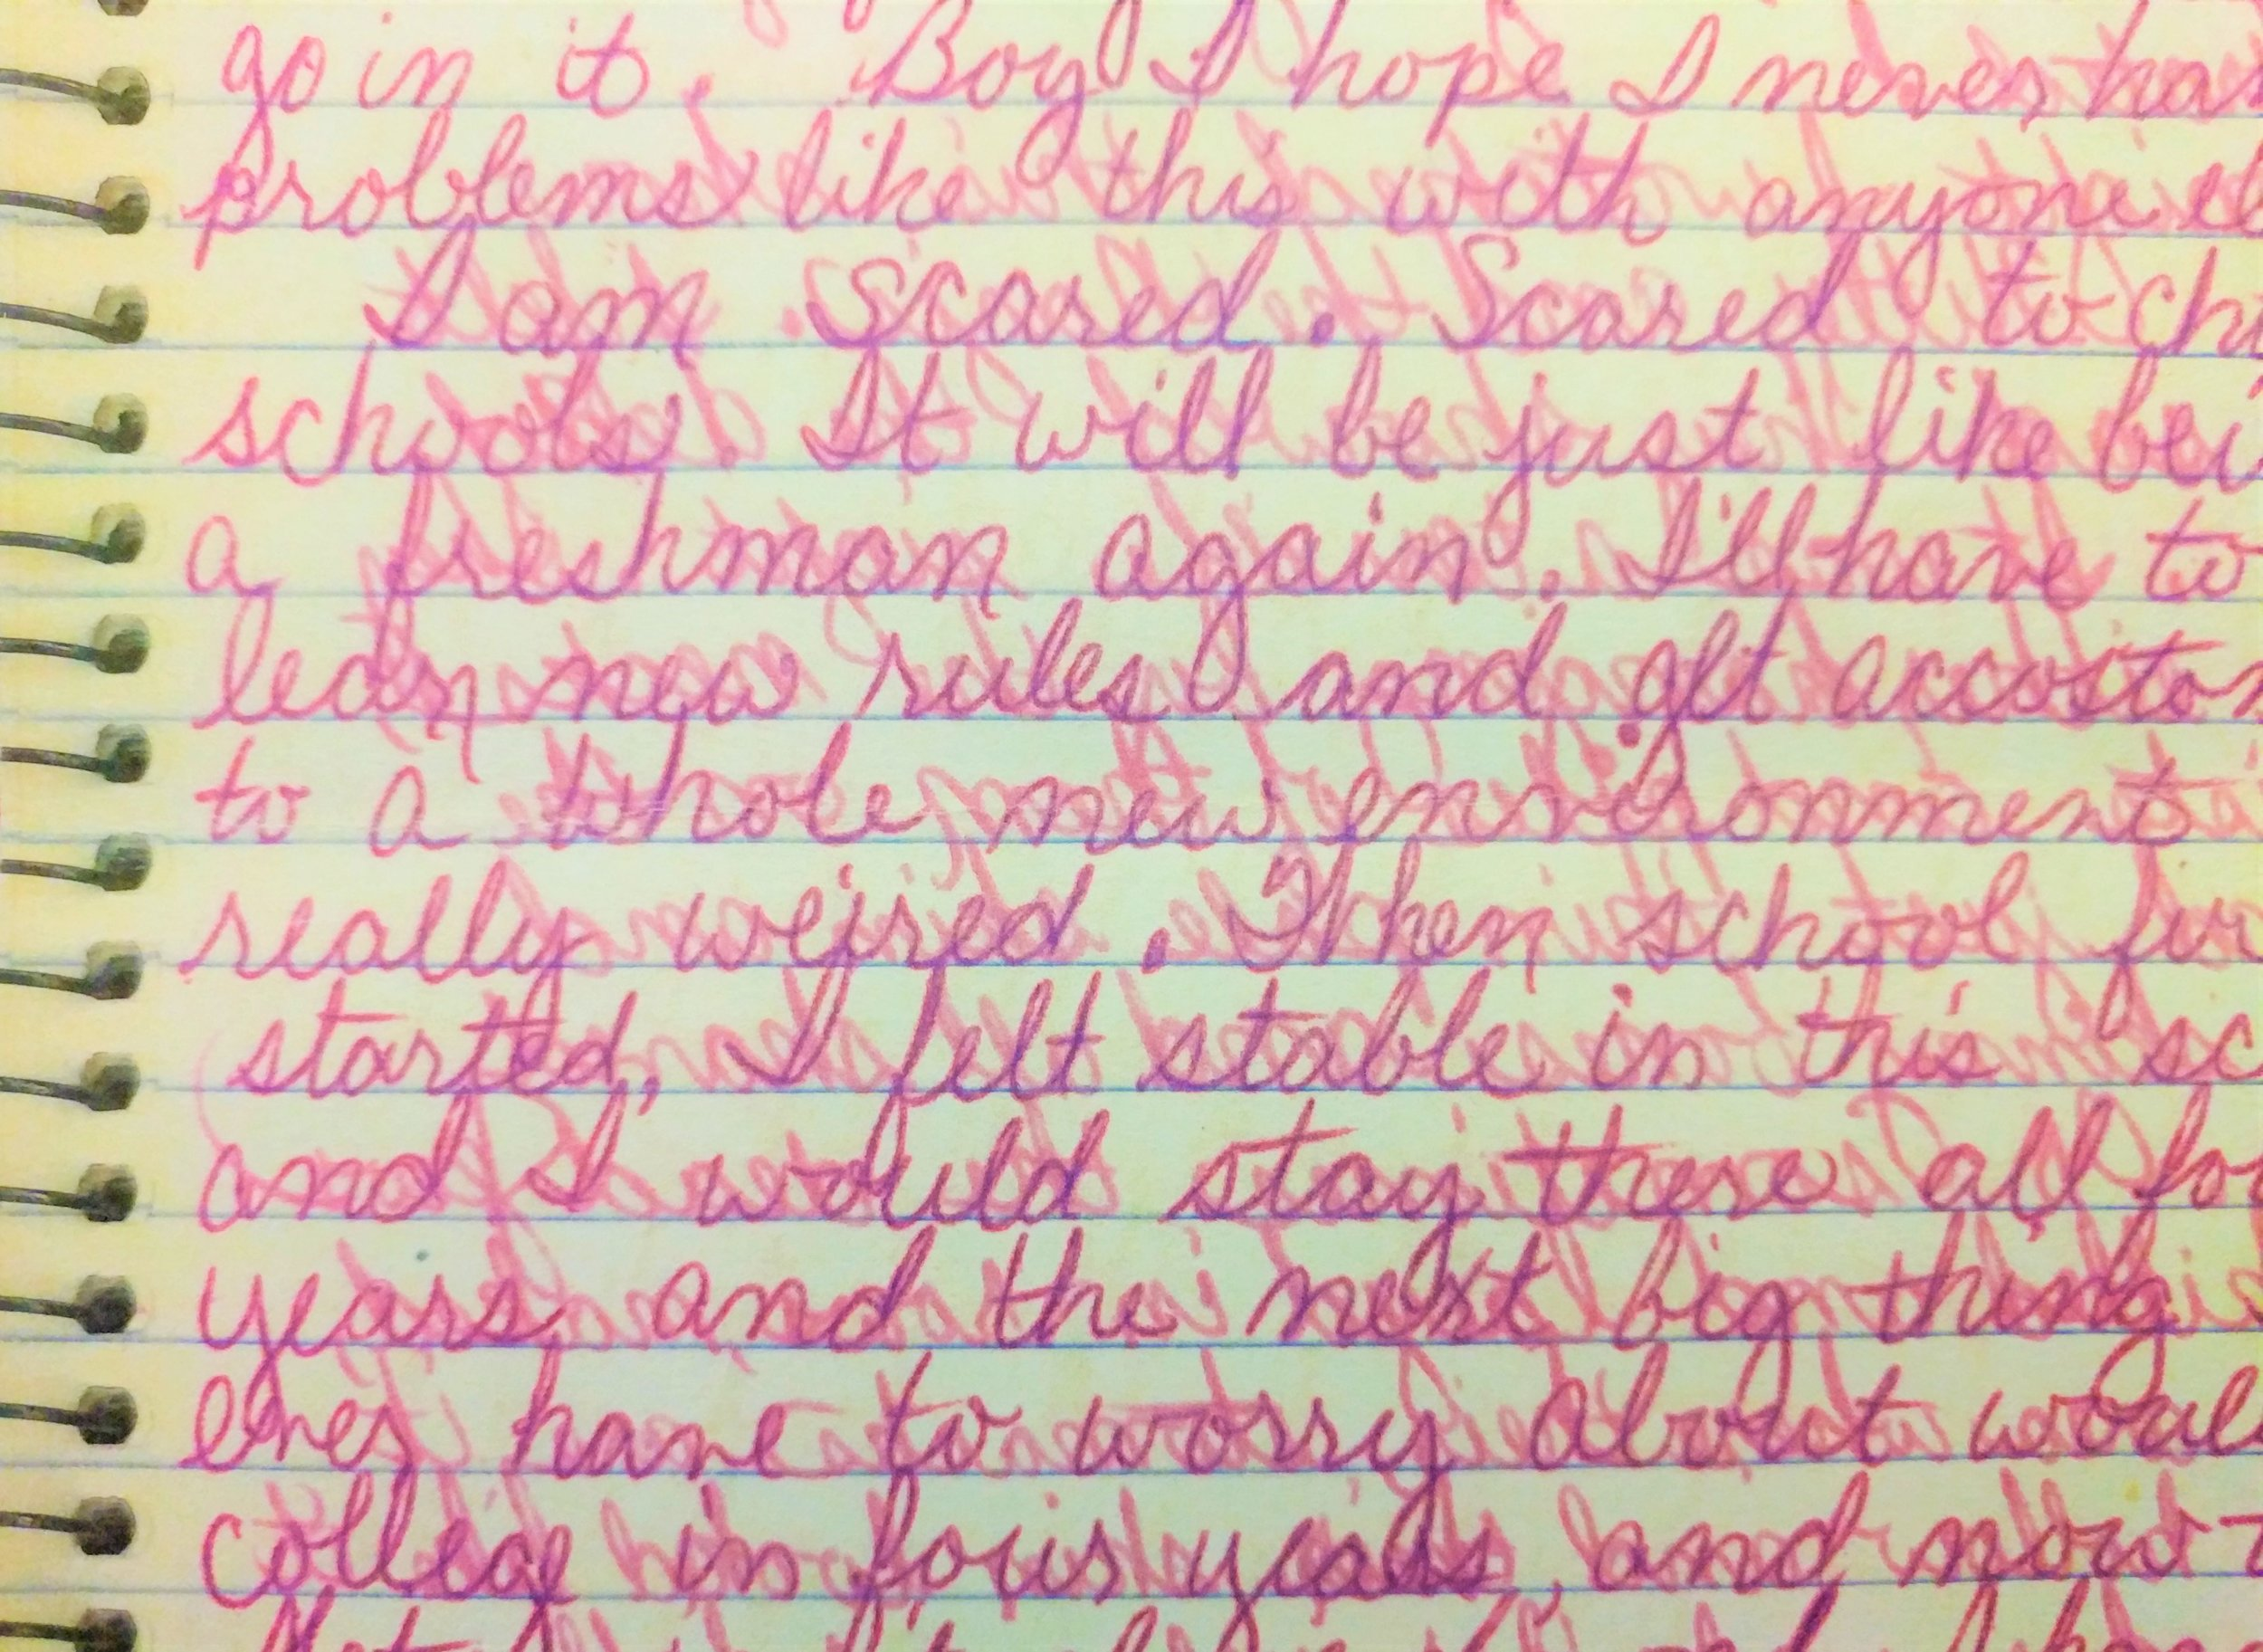 A page from Rhonda's high school journal.